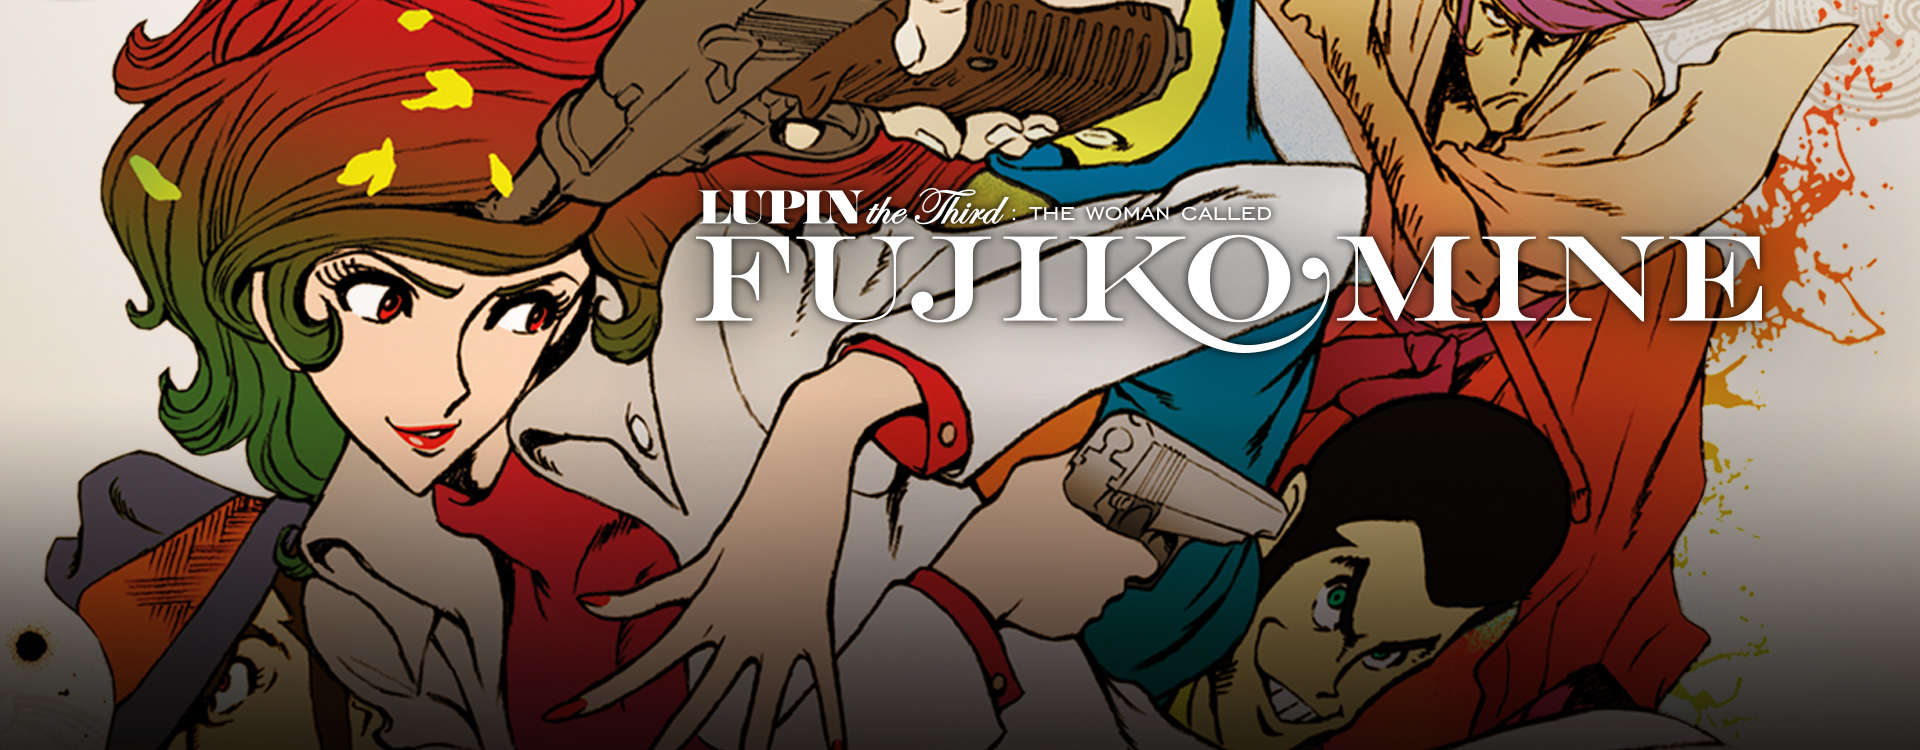 Lupin the Third - The Woman Called Fujiko Mine